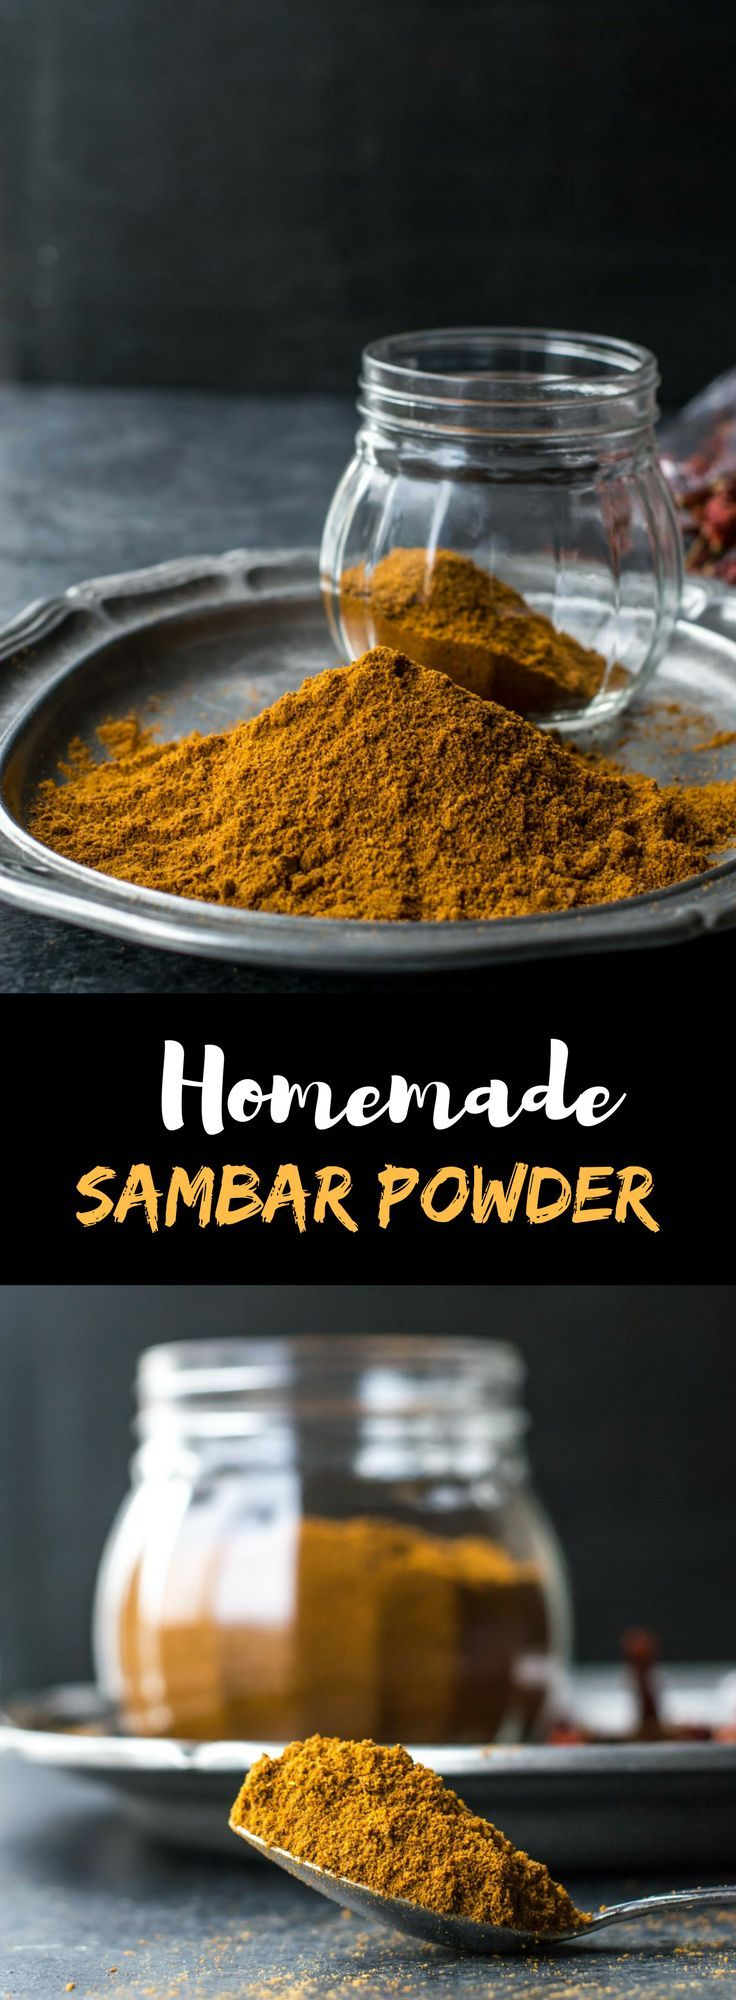 Sambar powder is this aromatic spice blend that transforms ordinary lentil-vegetable dishes into delicious, wholesome stews. Make the recipe today and you'll never buy this spice blend from the store again! via @simmertoslimmer